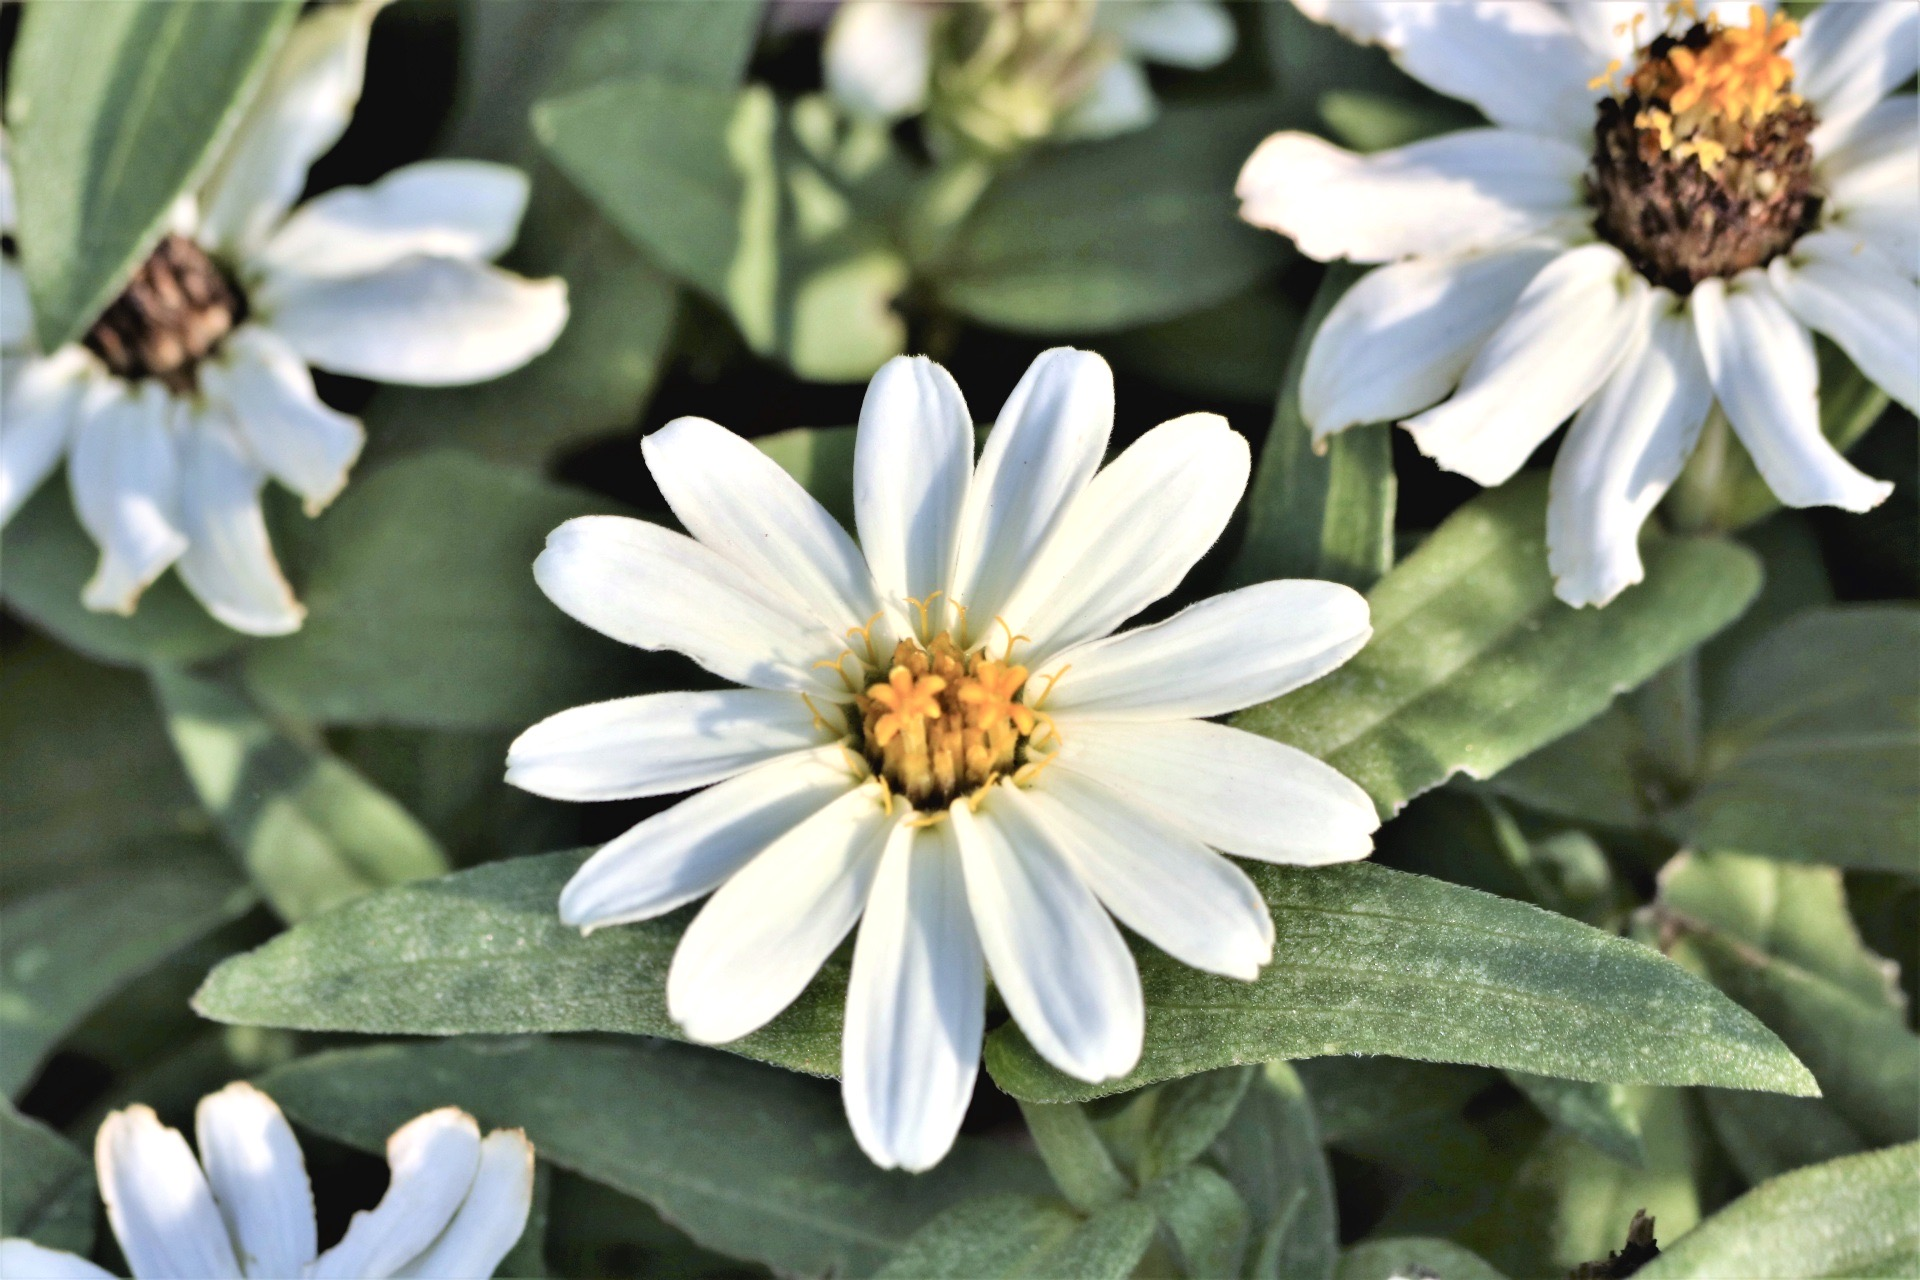 elegant single-row white profusion zinnia flower blossom with 13 single petals surrounding vibrant center with yellow and orange pistils prepared as funeral flower